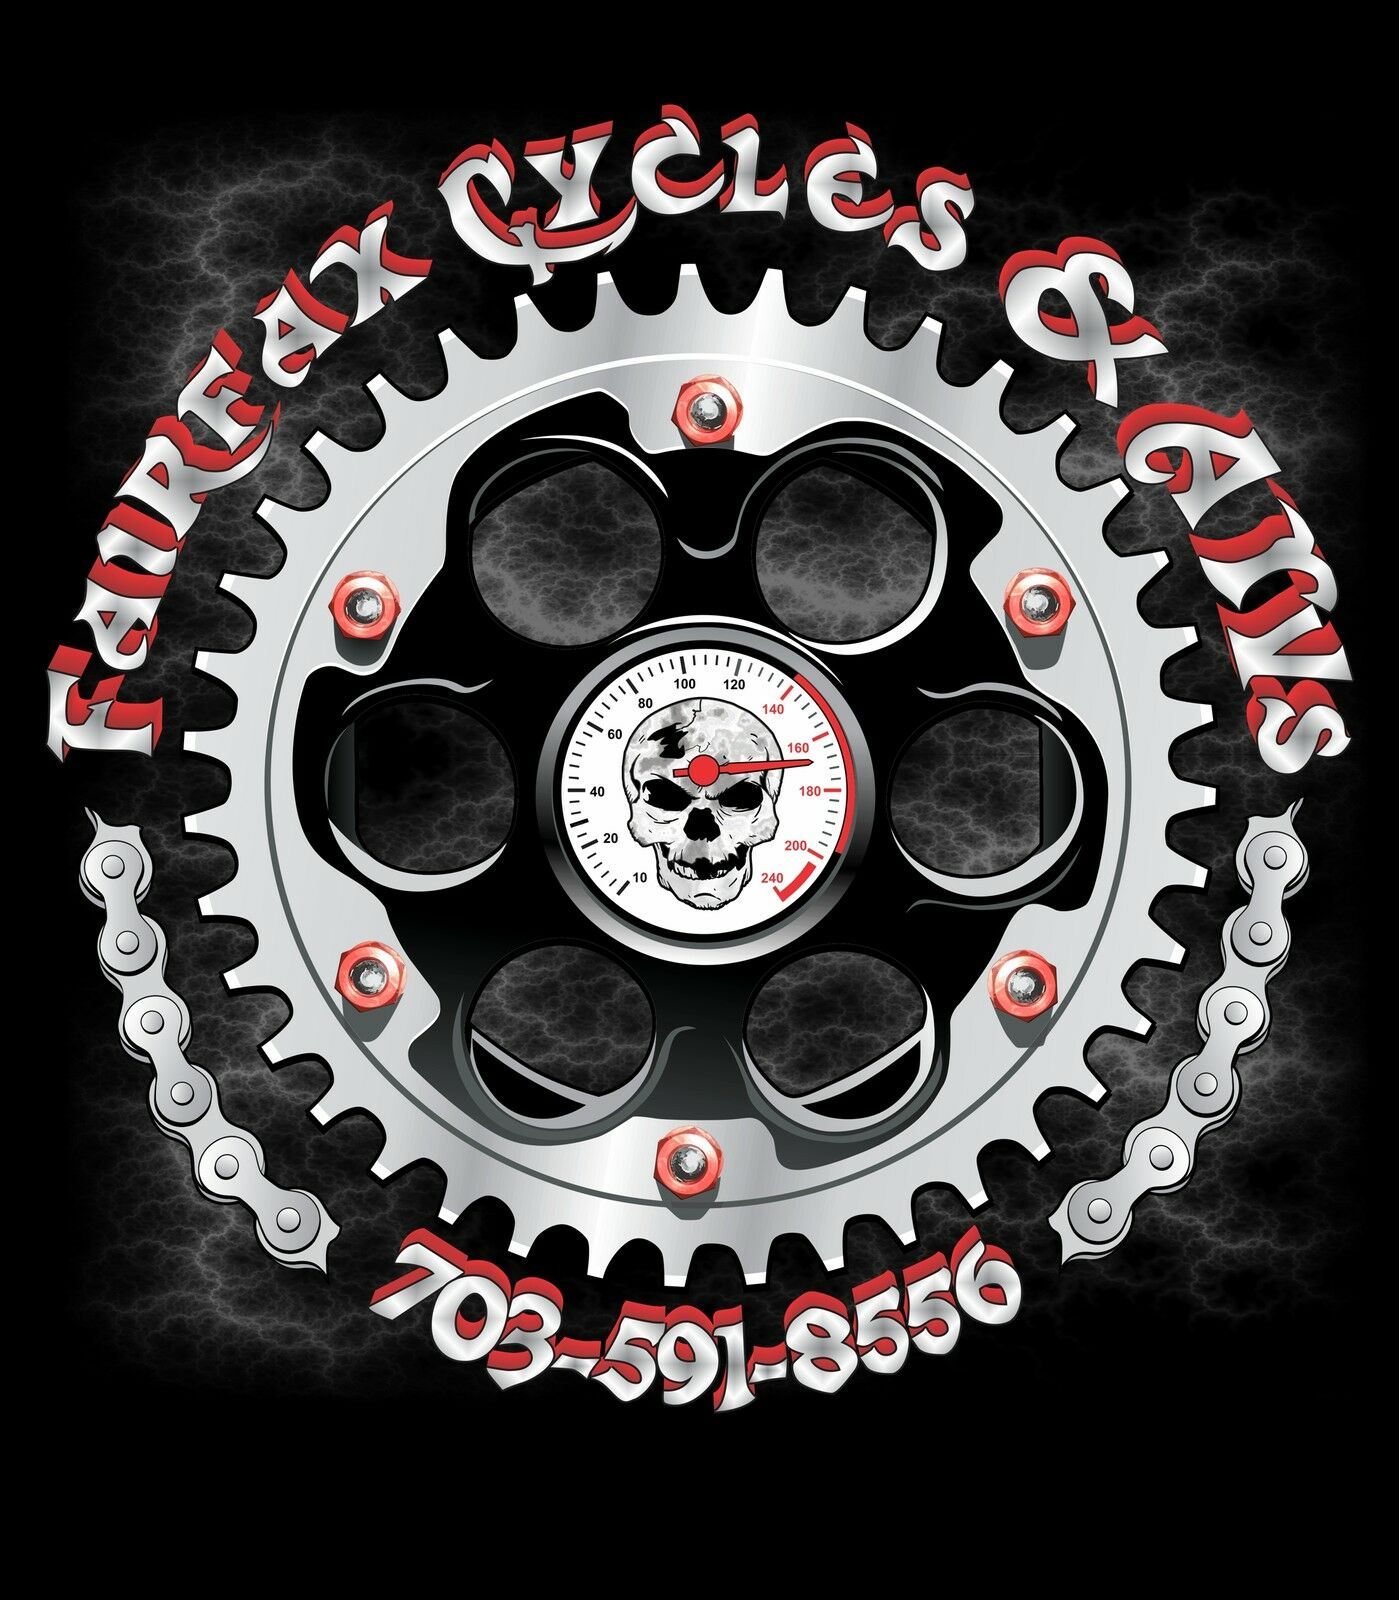 Fairfax Cycles